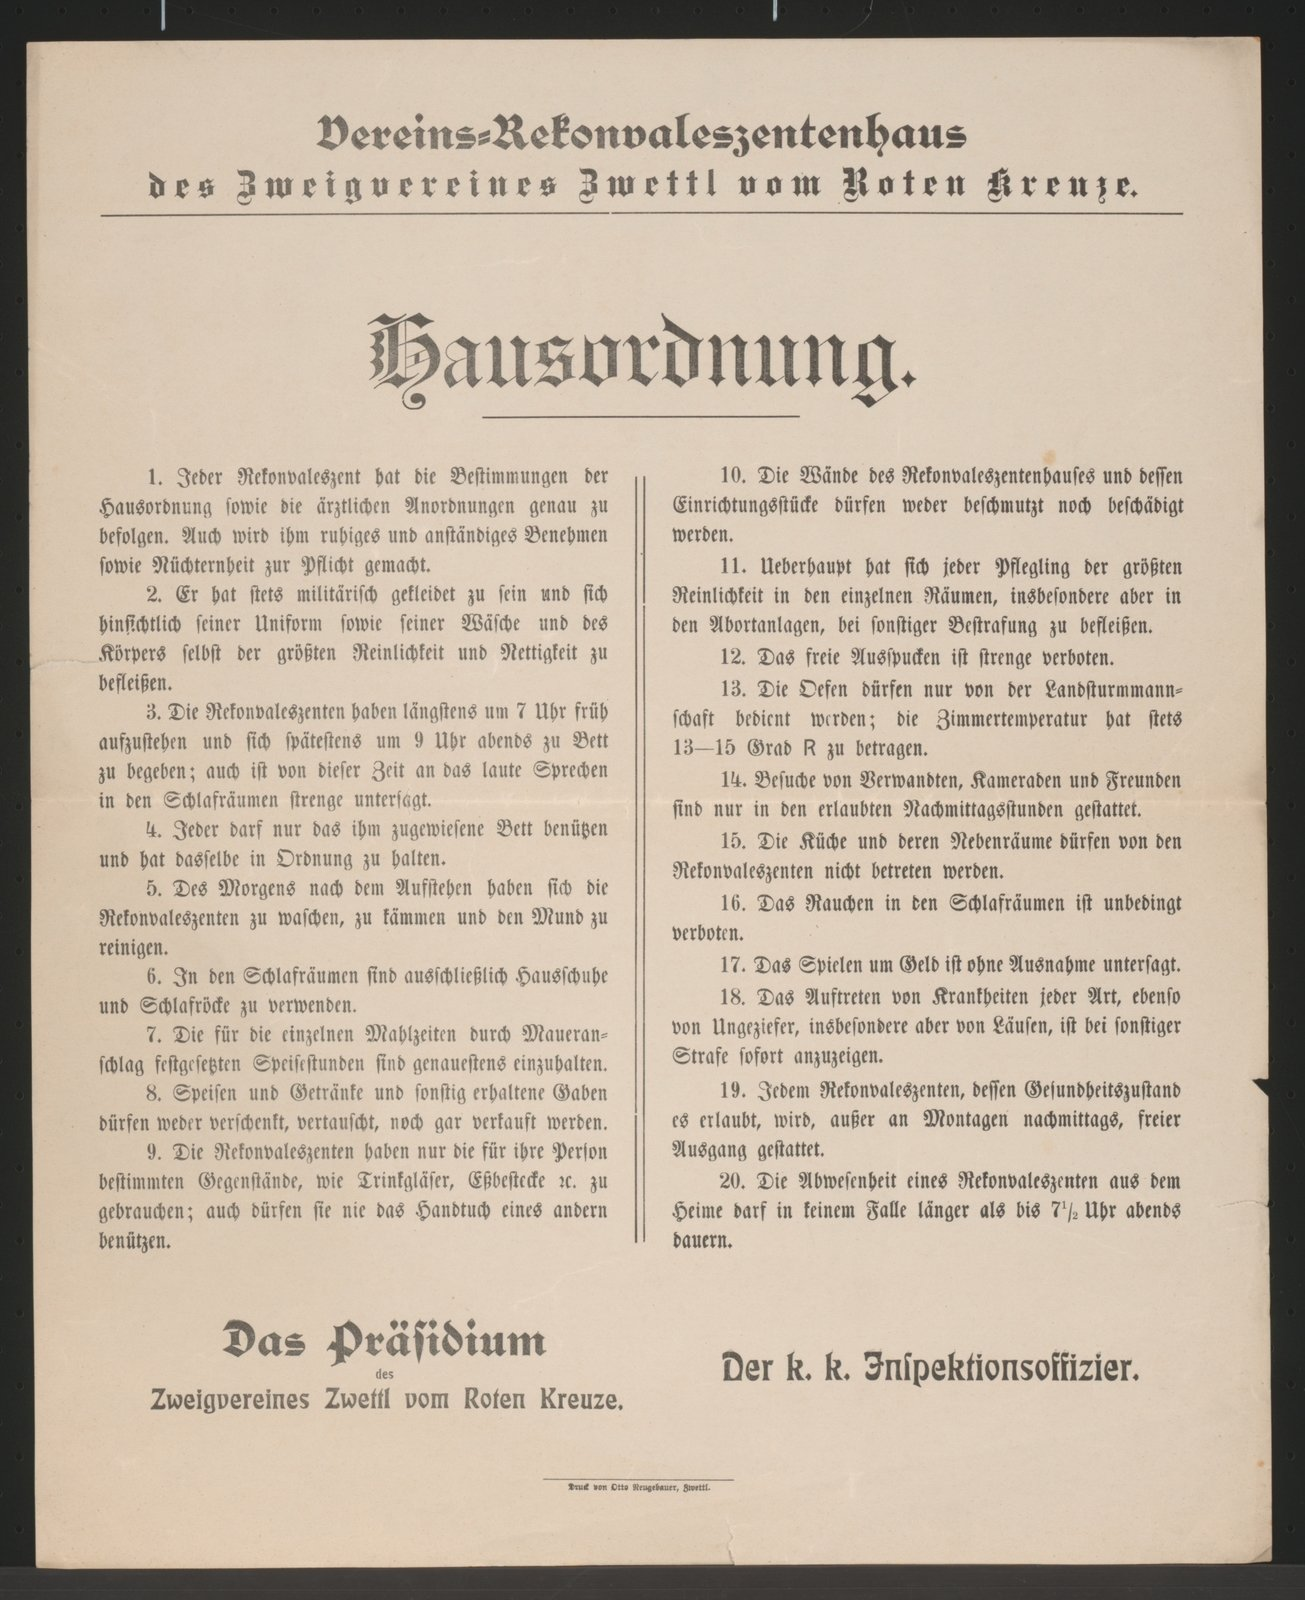 House Rules by an Austrian hospital: The life of the soldiers remains strictly regulated even during an injury or disease., 1916 Zwettl, Österreichische Nationalbibliothek - Austrian National Library, Public Domain Mark